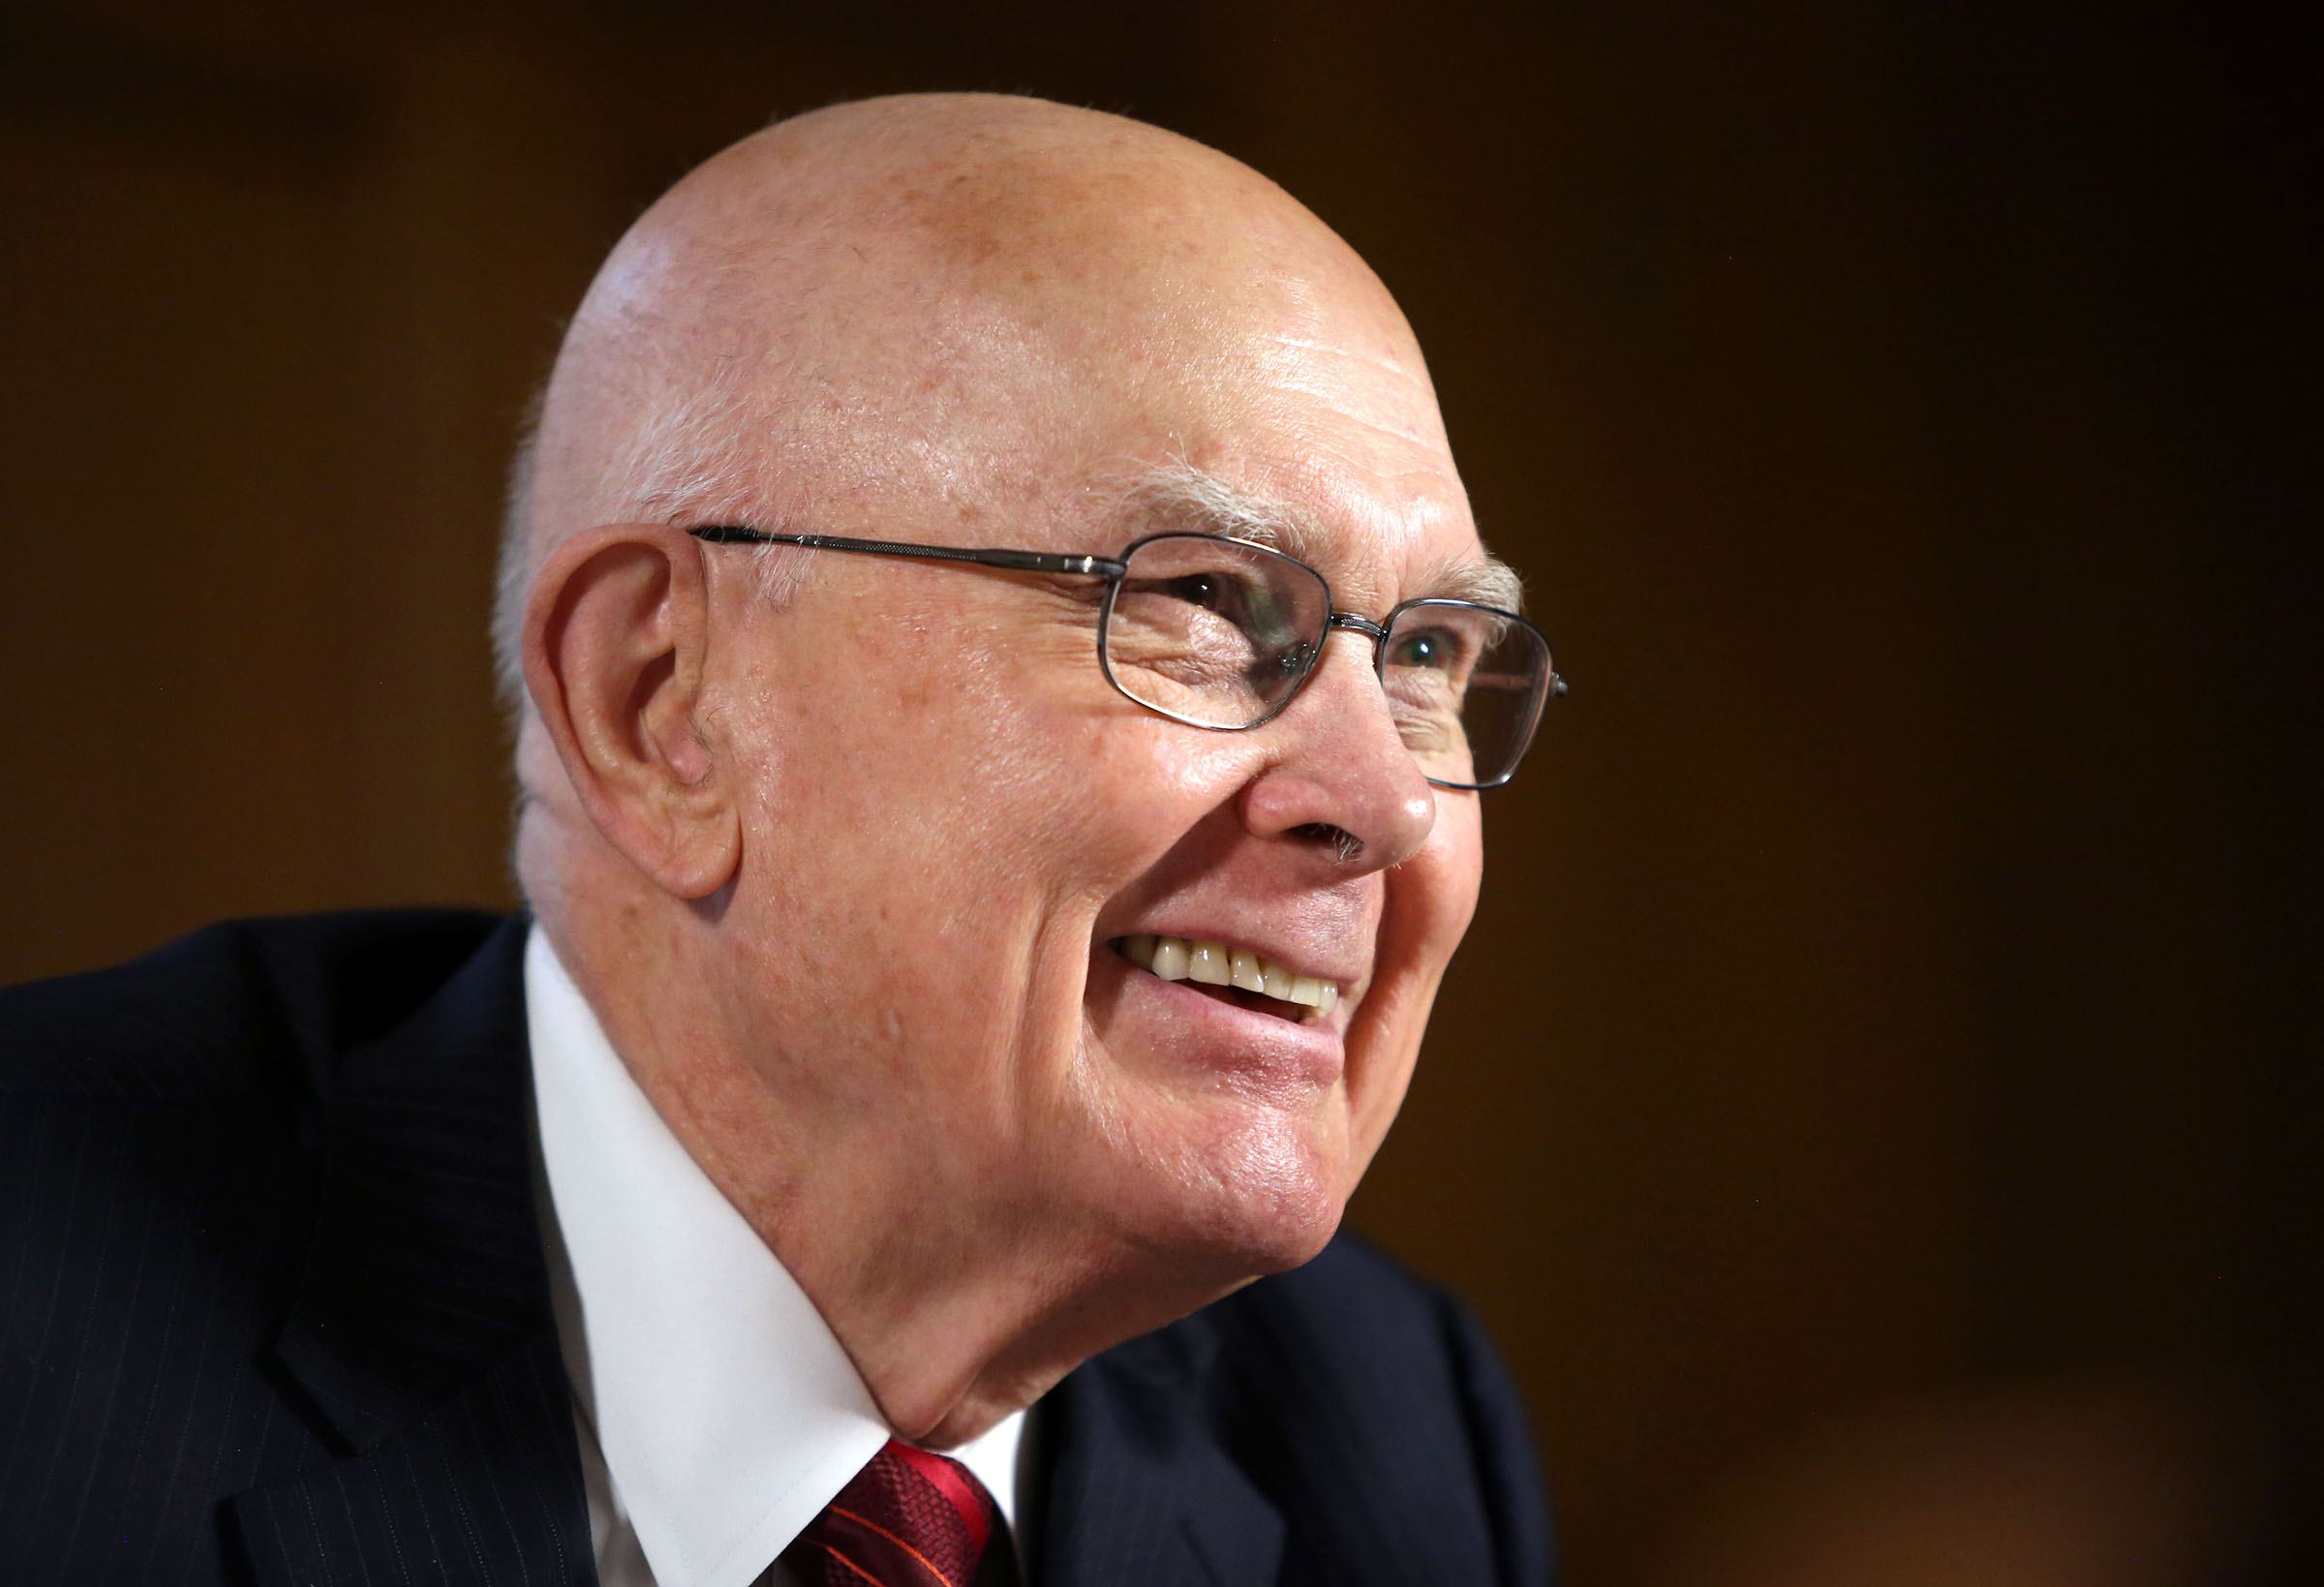 Elder Dallin H. Oaks answers interview questions at his office in the Church Administration Building in Salt Lake City on Wednesday, Jan. 10, 2018.